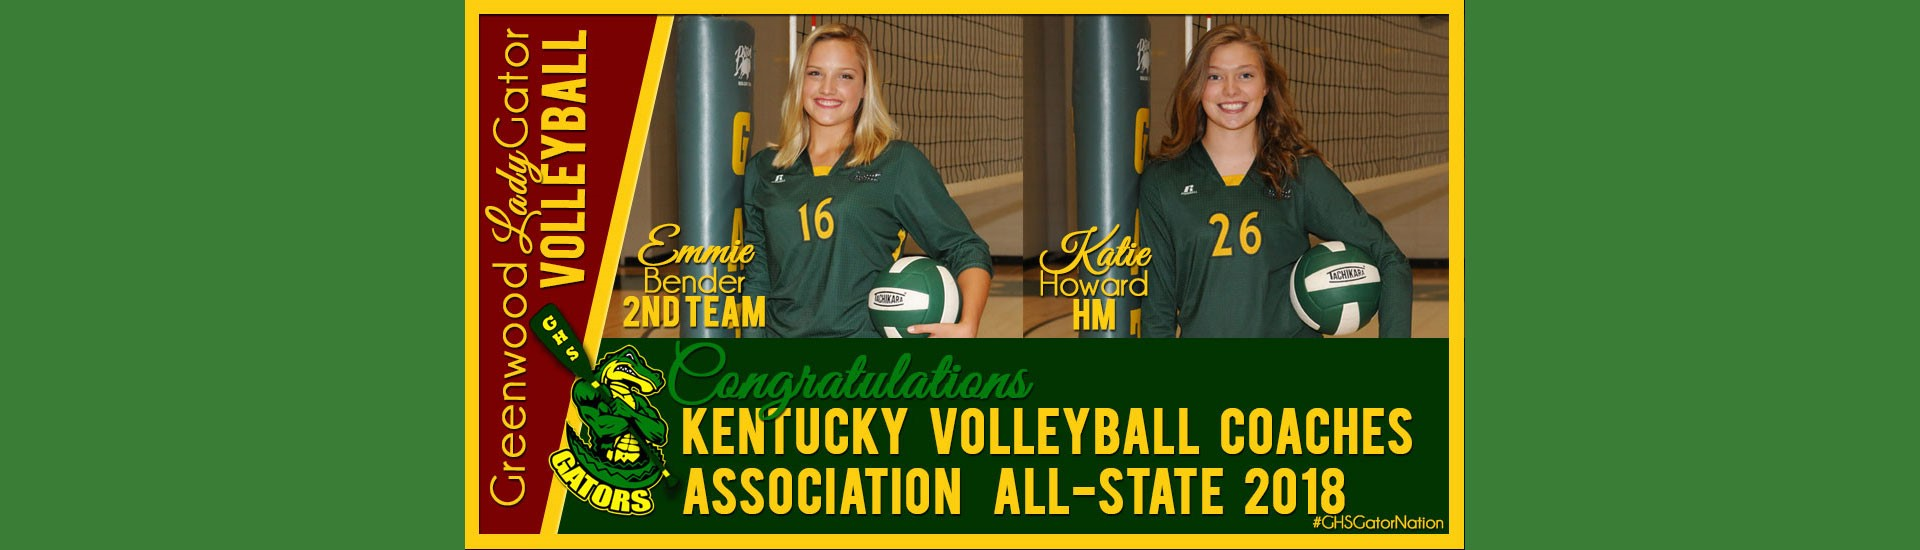 All-State Volleball